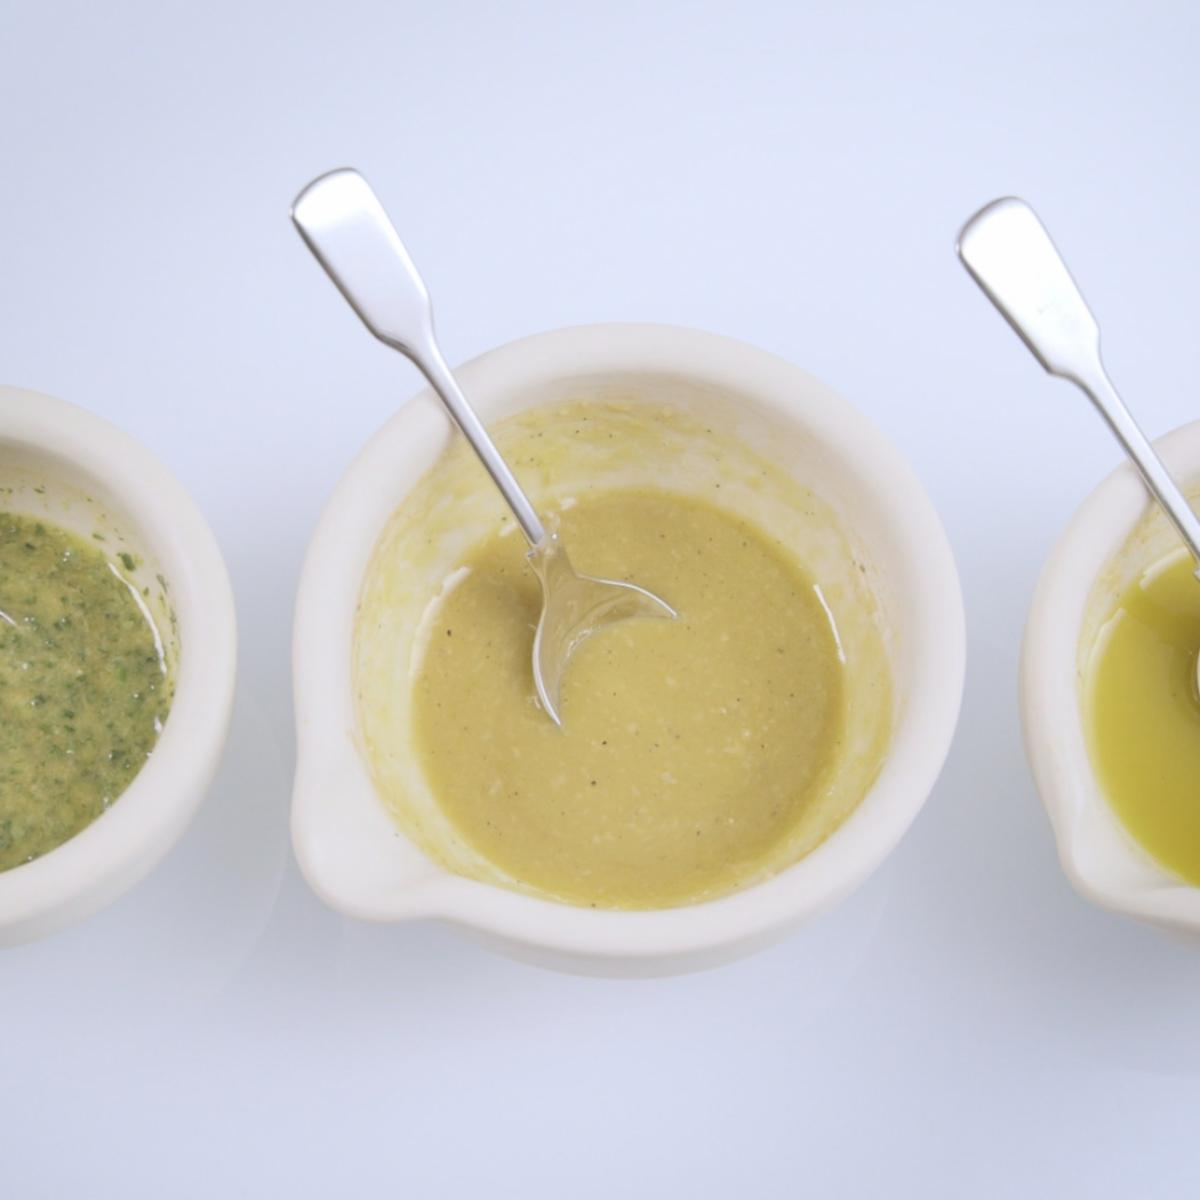 A picture of Delia's Sauces and dressings how to cook guides